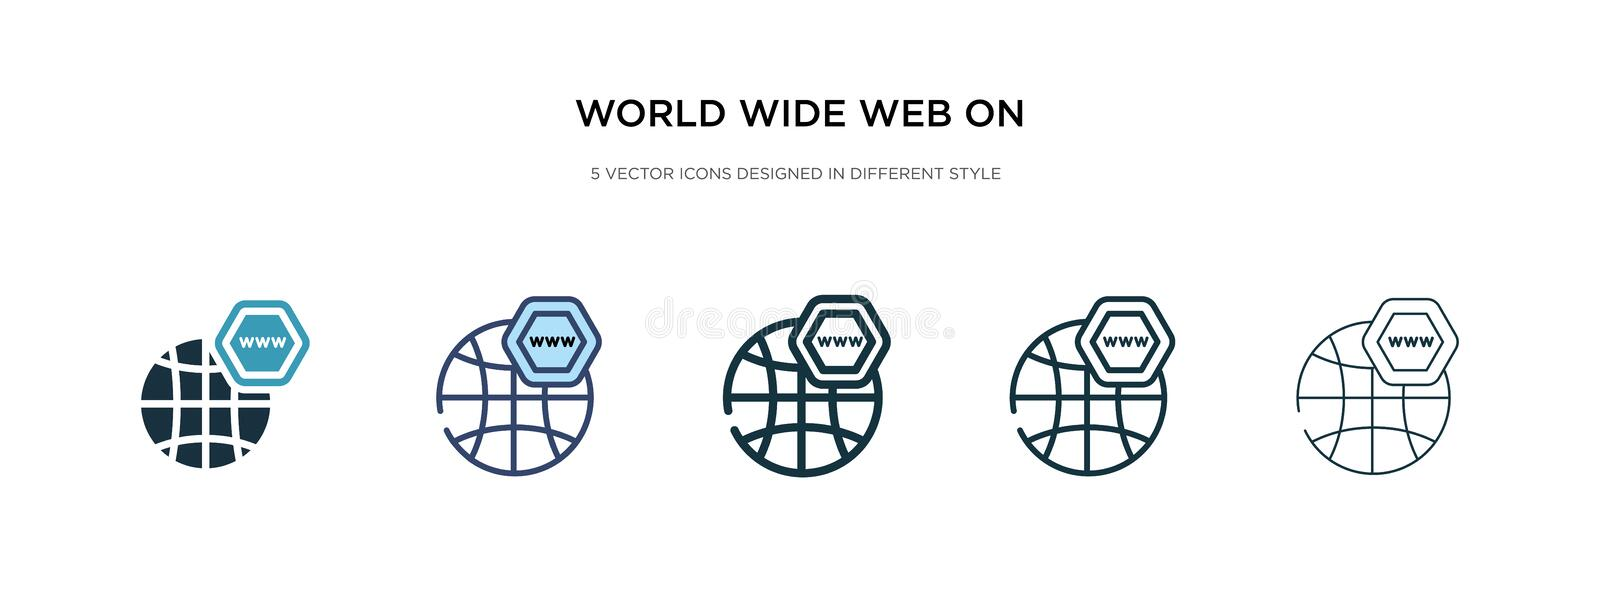 World wide web on grid icon in different style vector illustration. two colored and black world wide web on grid vector icons stock illustration